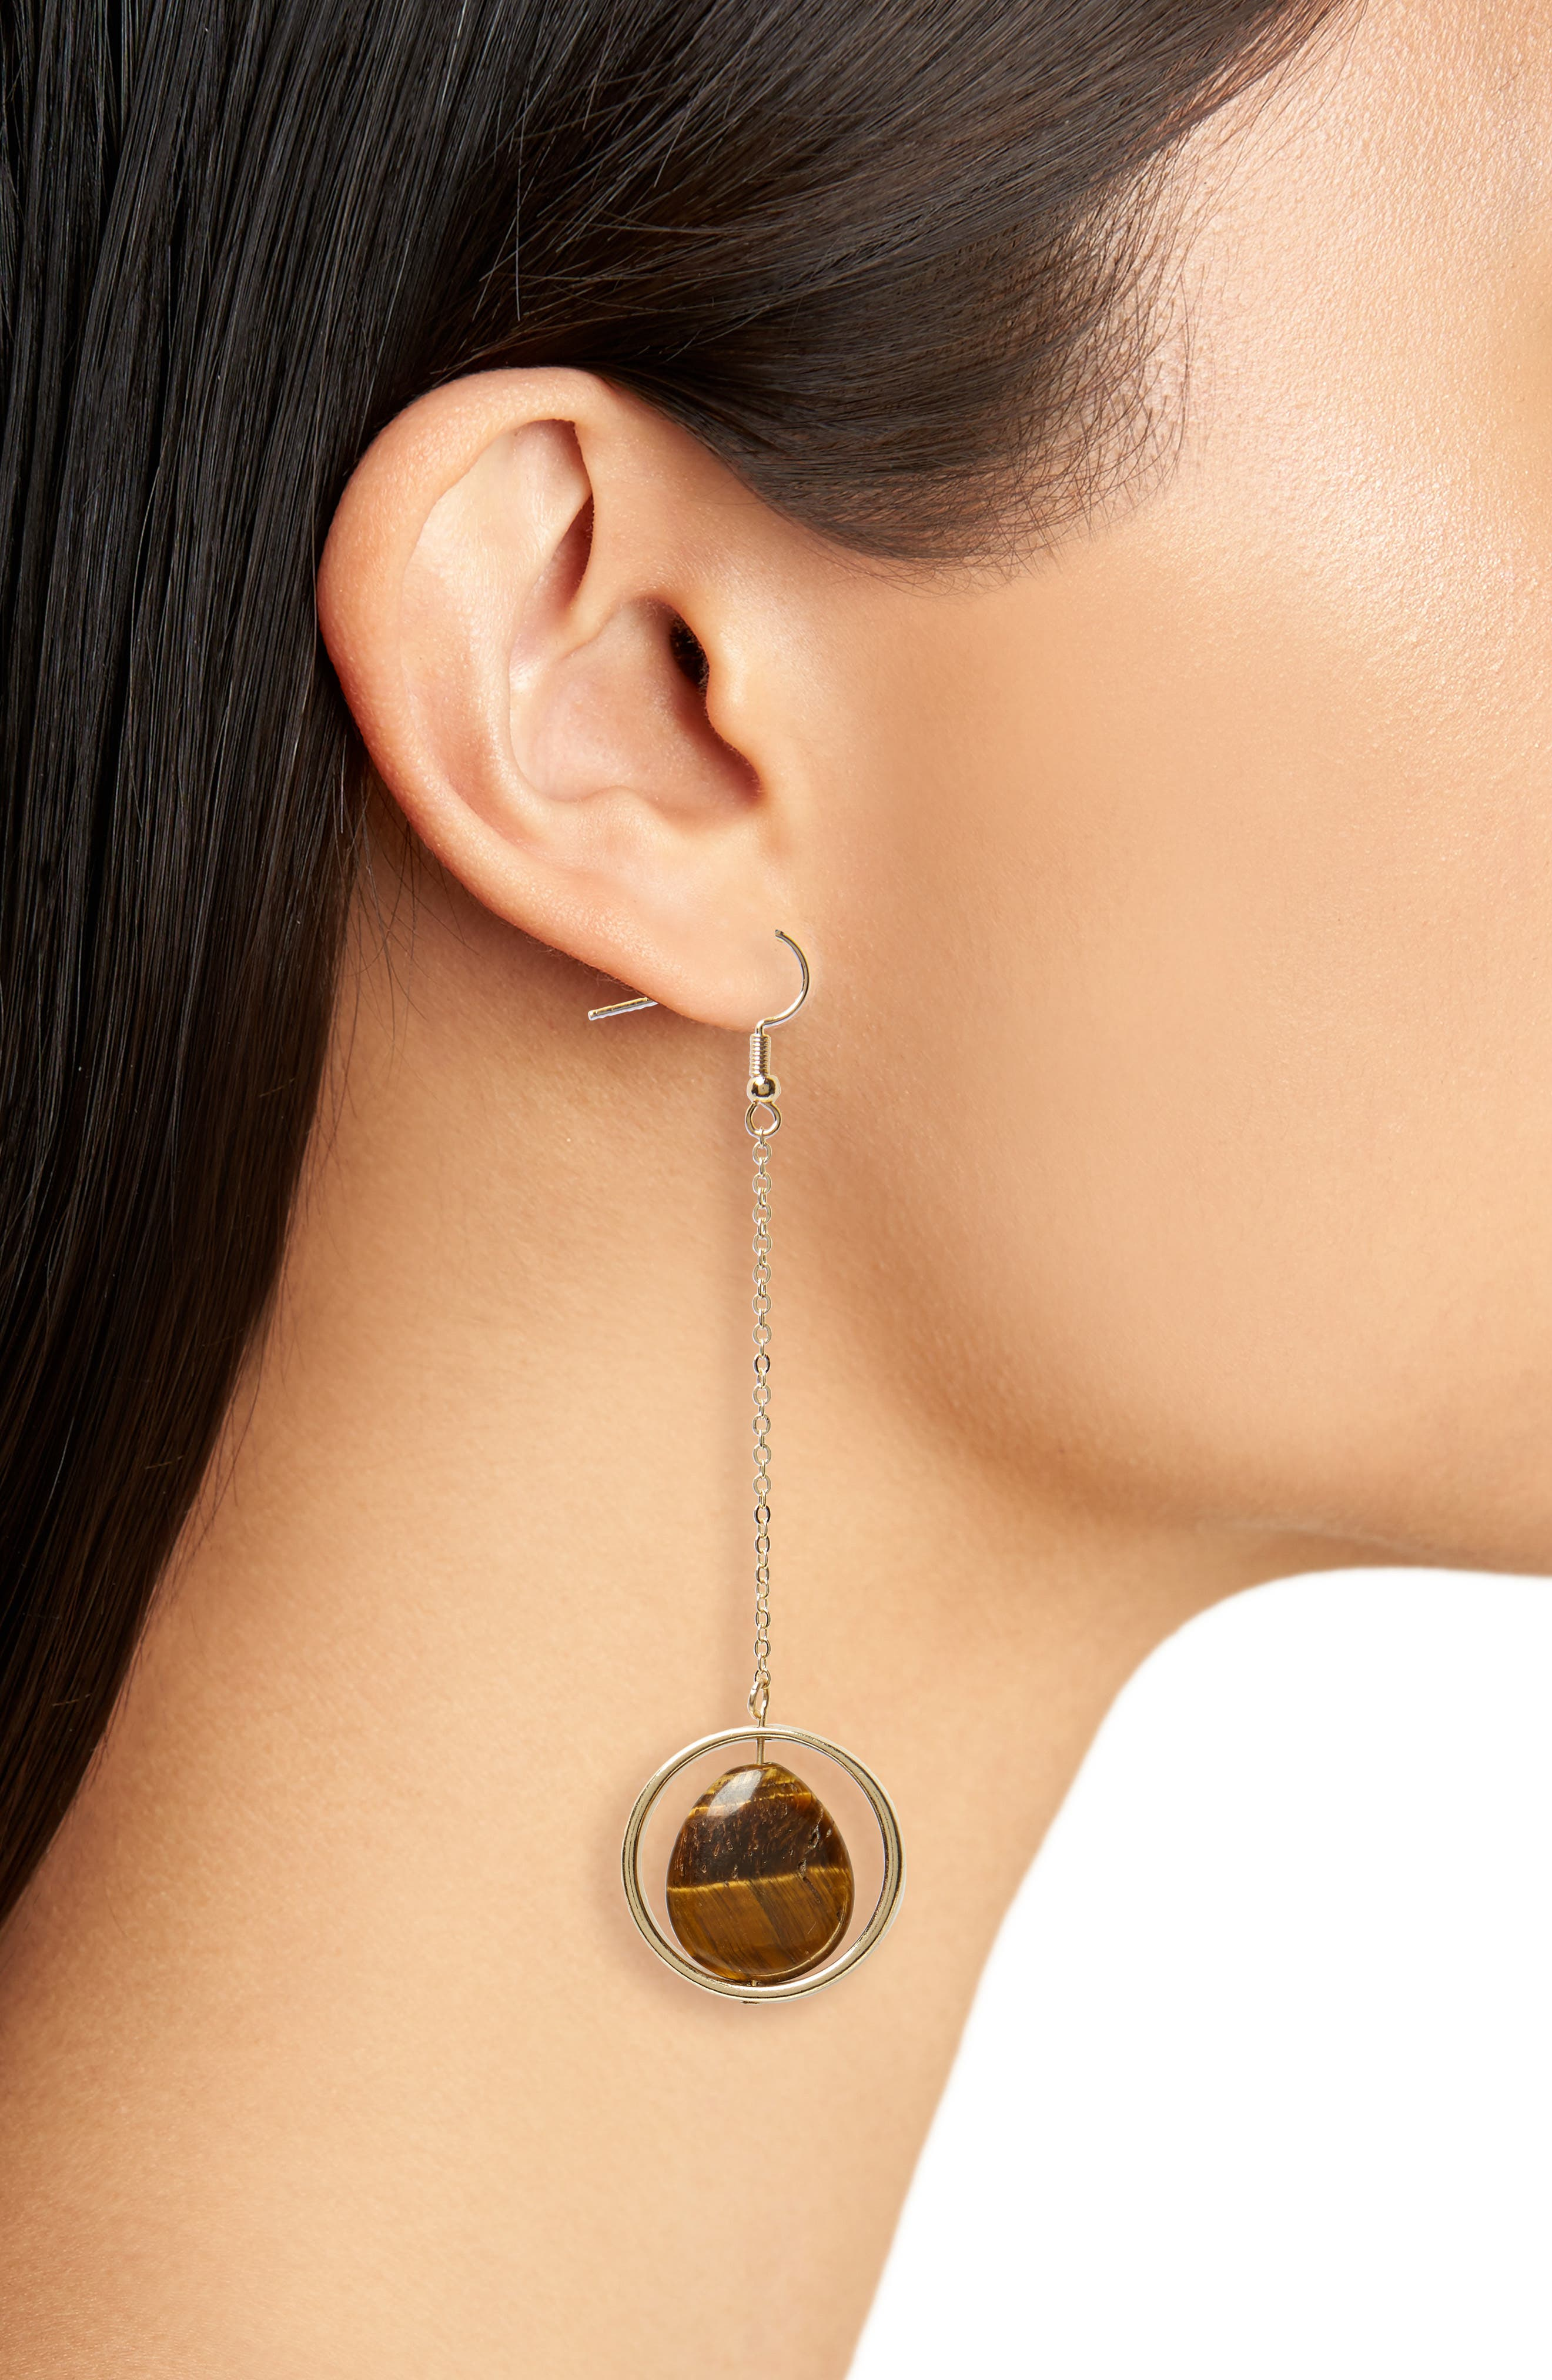 Tiger's Eye Drop Earrings,                             Alternate thumbnail 2, color,                             GOLD/ STONE